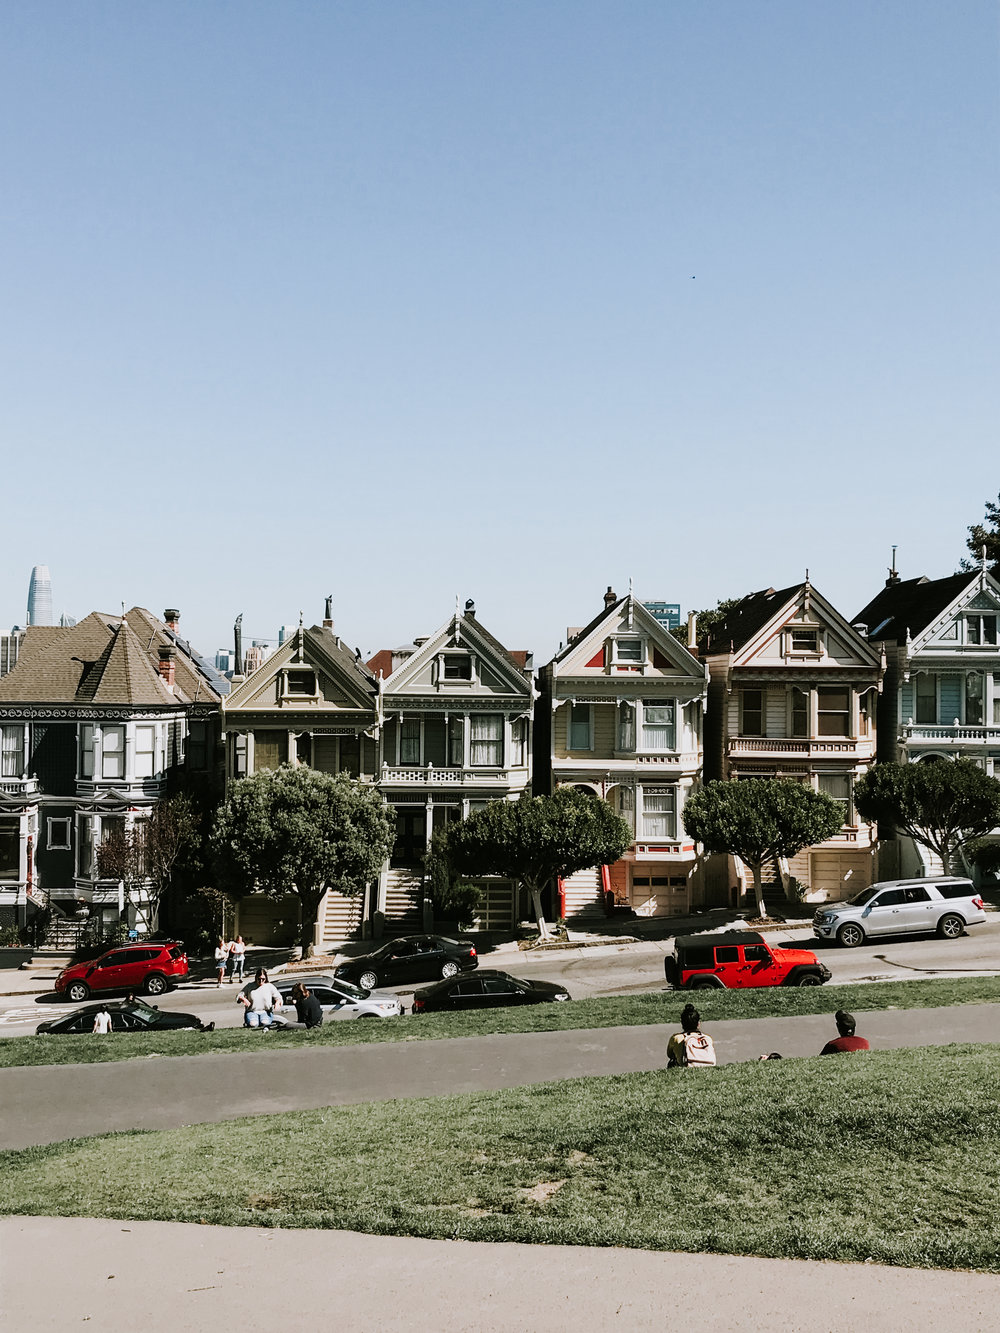 Our trip to San Francisco - the painted ladies